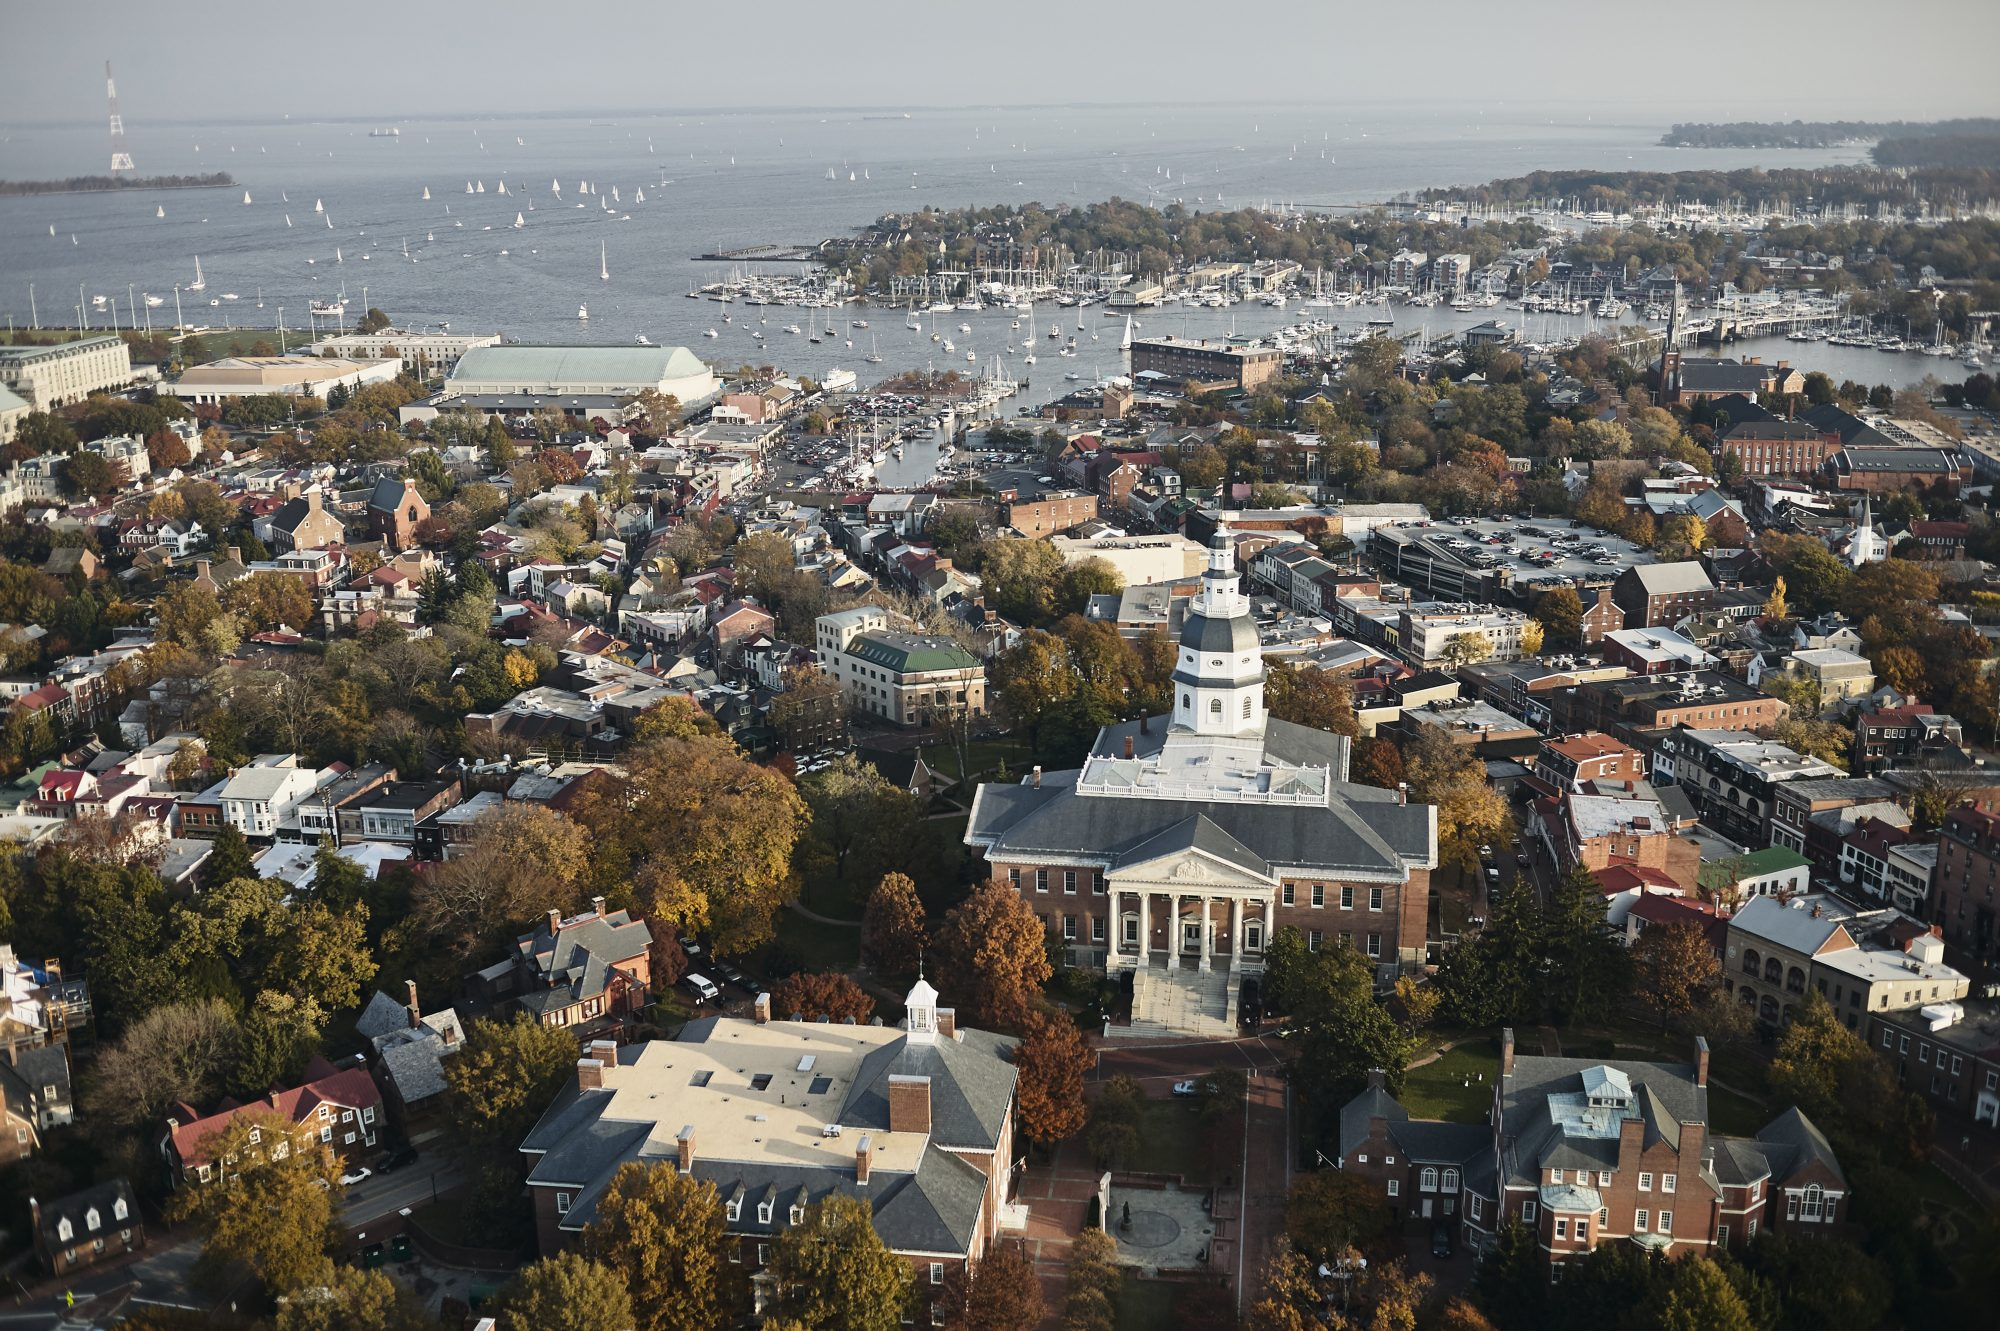 4. Annapolis, Maryland